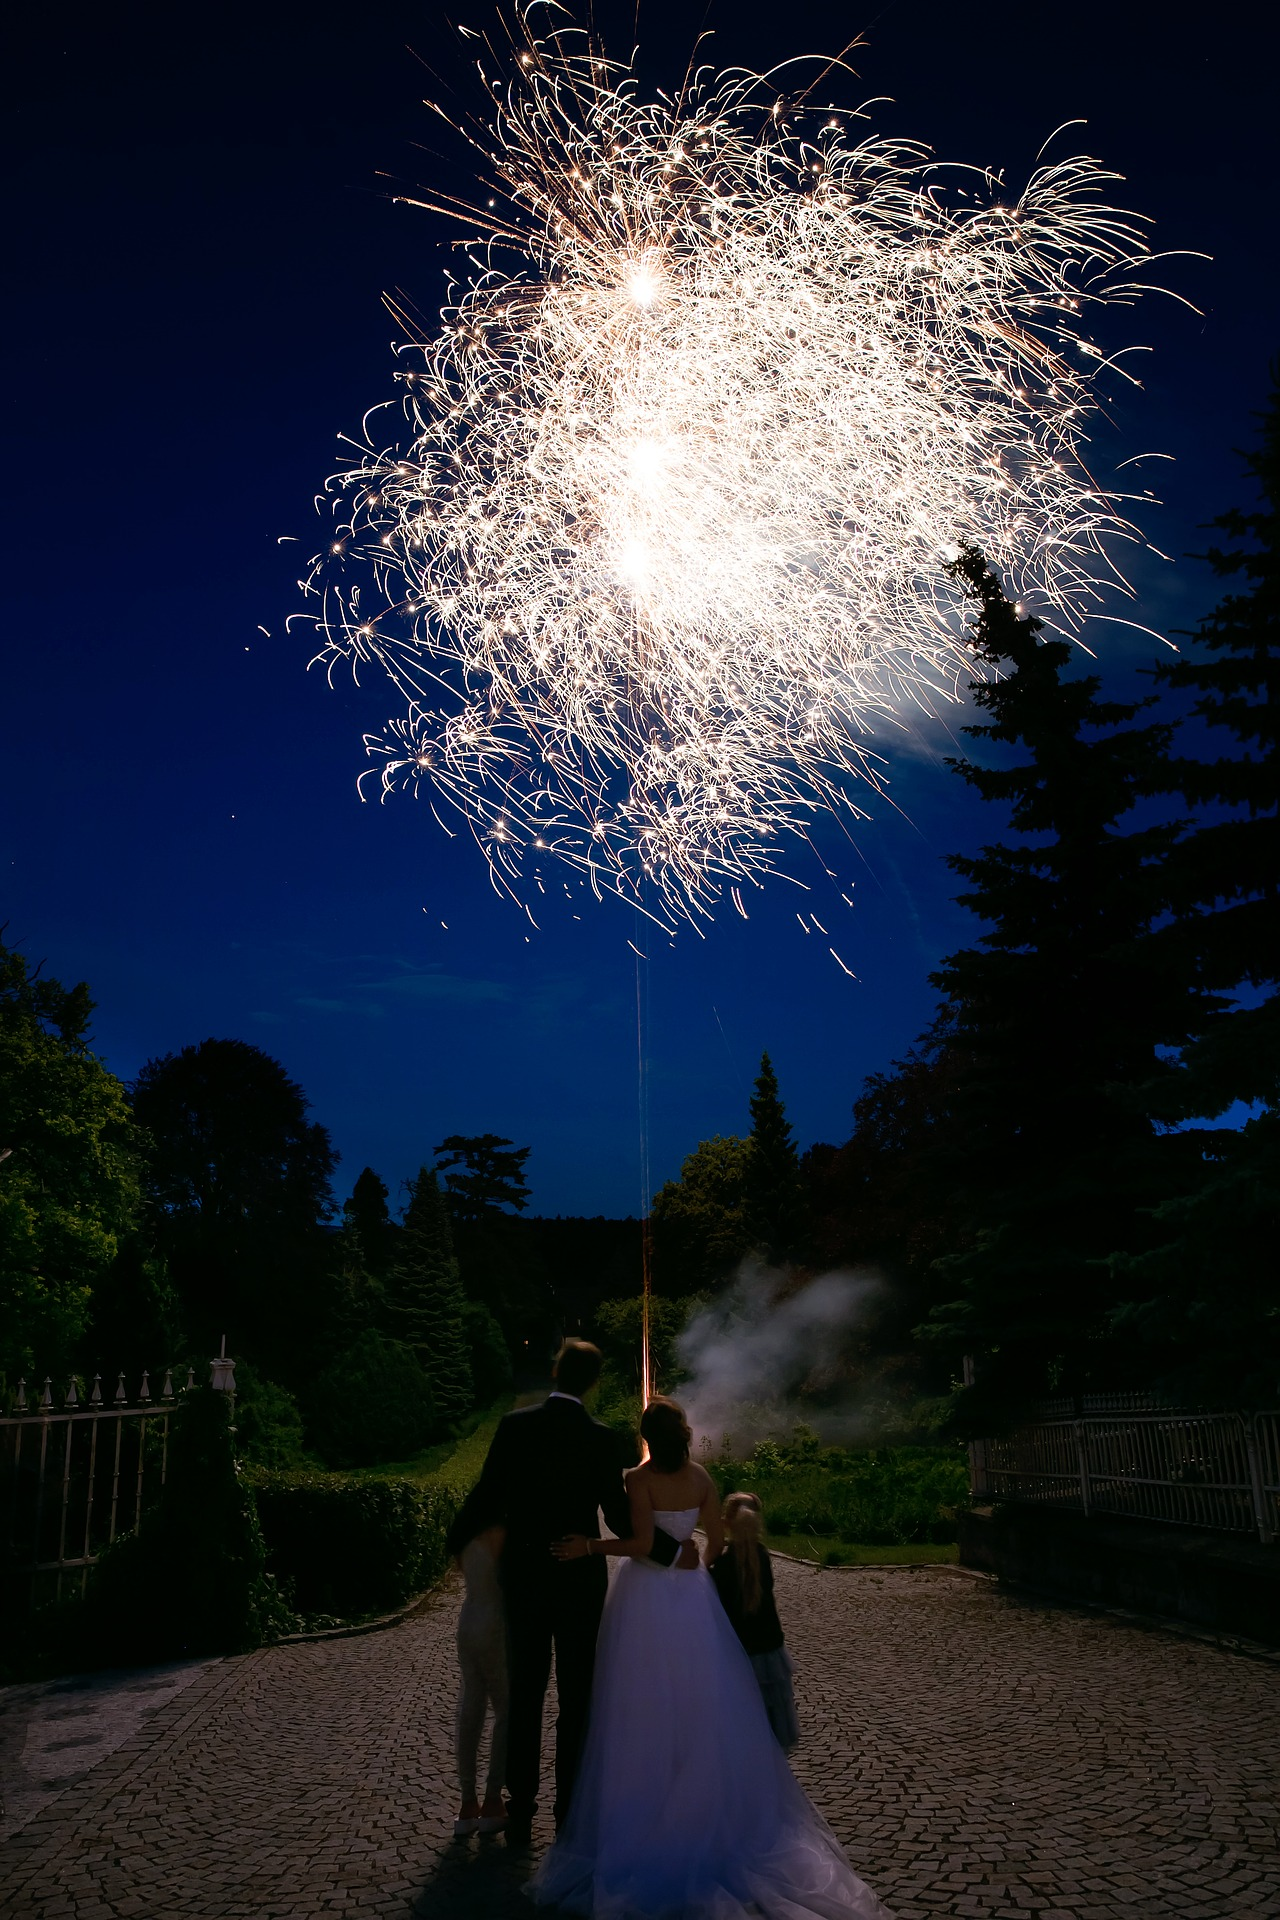 Wedding couple with children watching fireworks